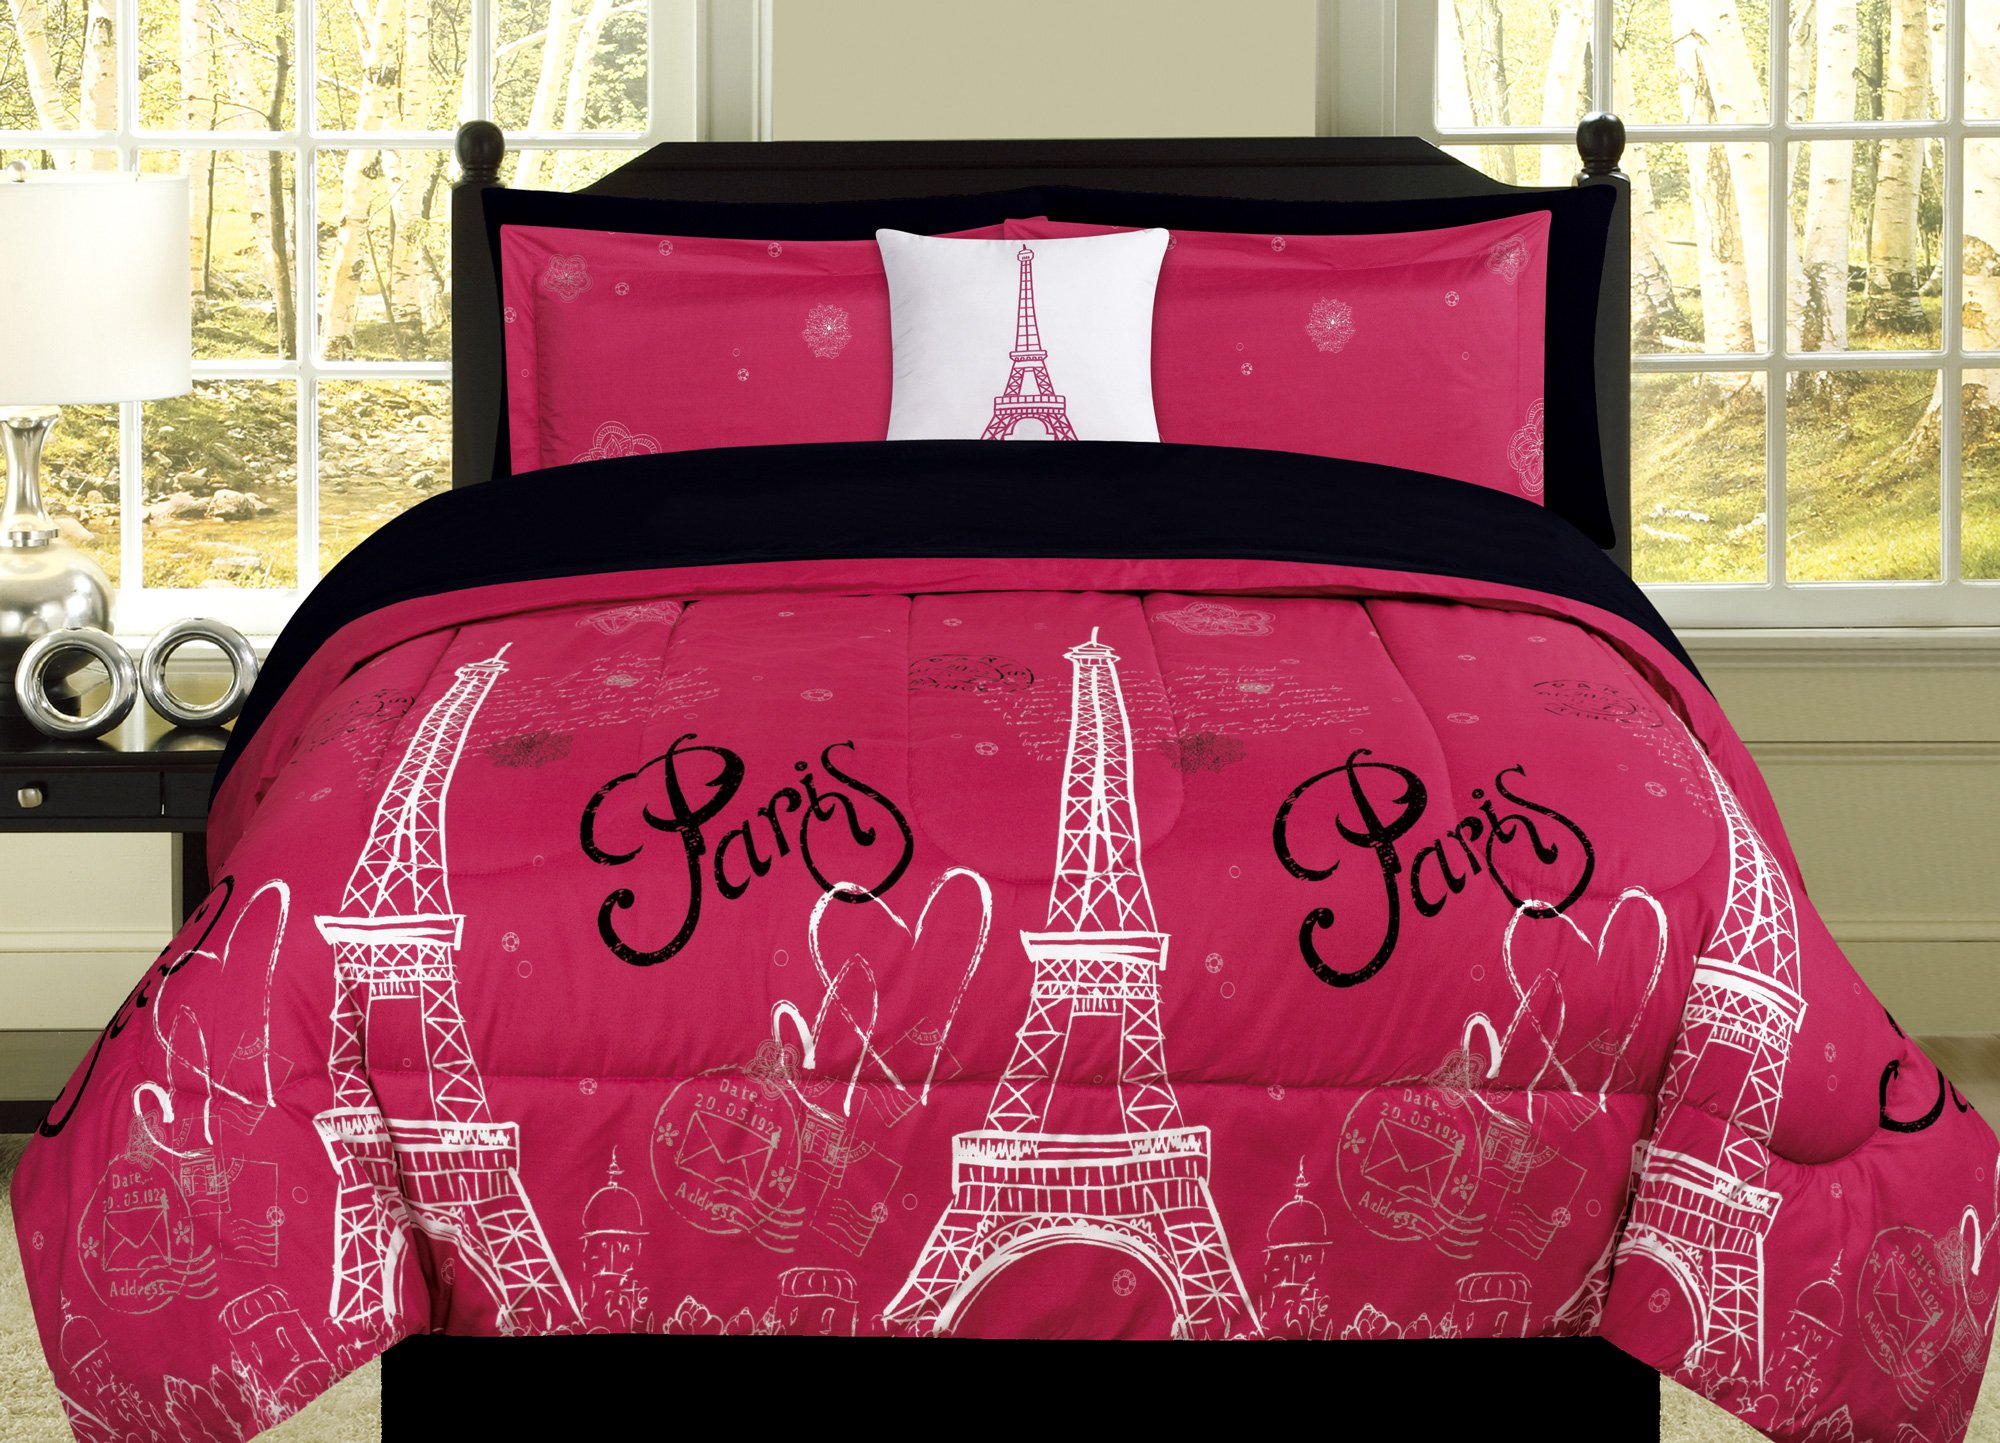 Full Paris Comforter Pink Black White Eiffel Tower Bedding and Sheet 8 Piece Bed in a Bag Set